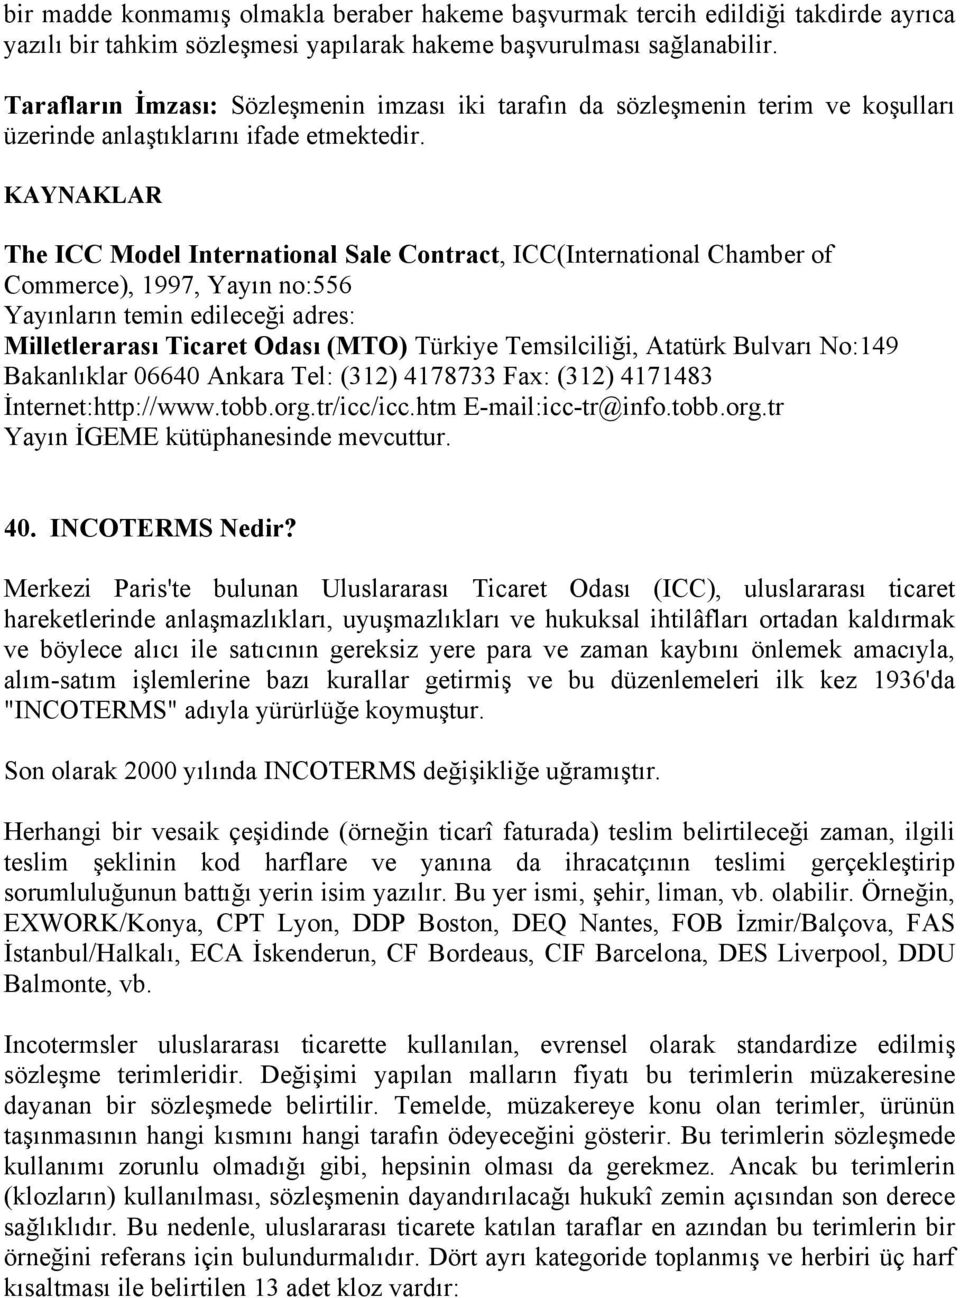 KAYNAKLAR The ICC Model International Sale Contract, ICC(International Chamber of Commerce), 1997, Yayın no:556 Yayınların temin edileceği adres: Milletlerarası Ticaret Odası (MTO) Türkiye